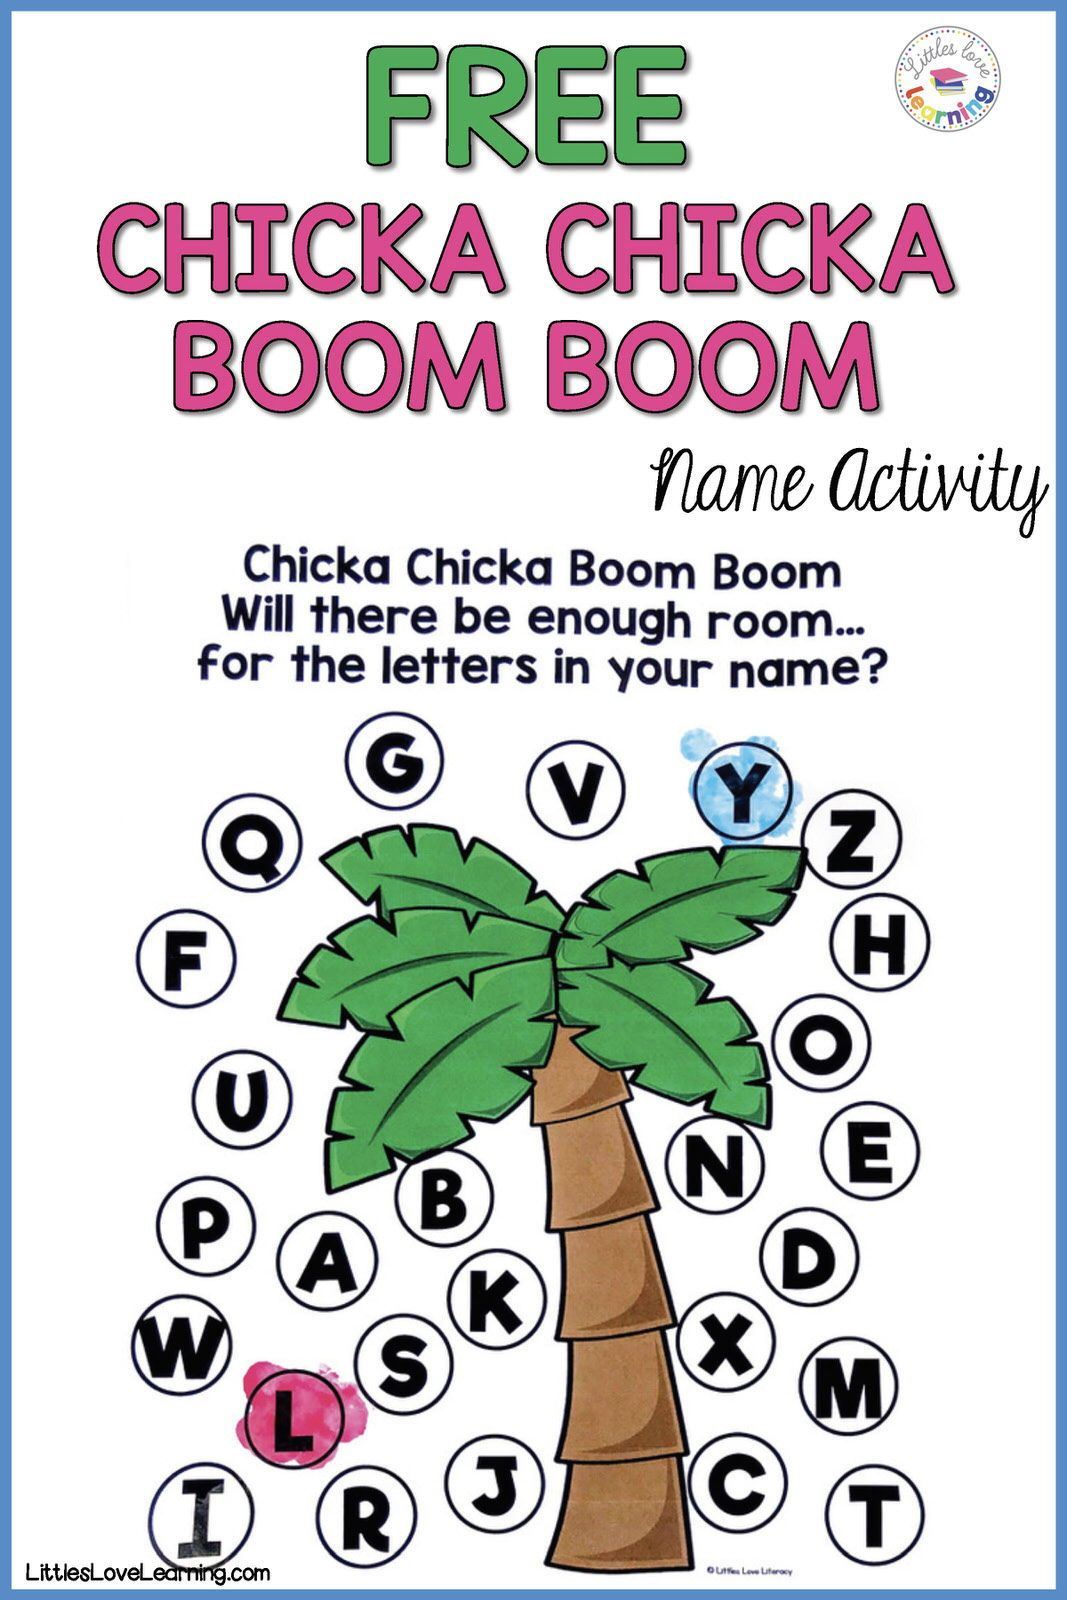 Free Printable For Chicka Chicka Boom Boom In